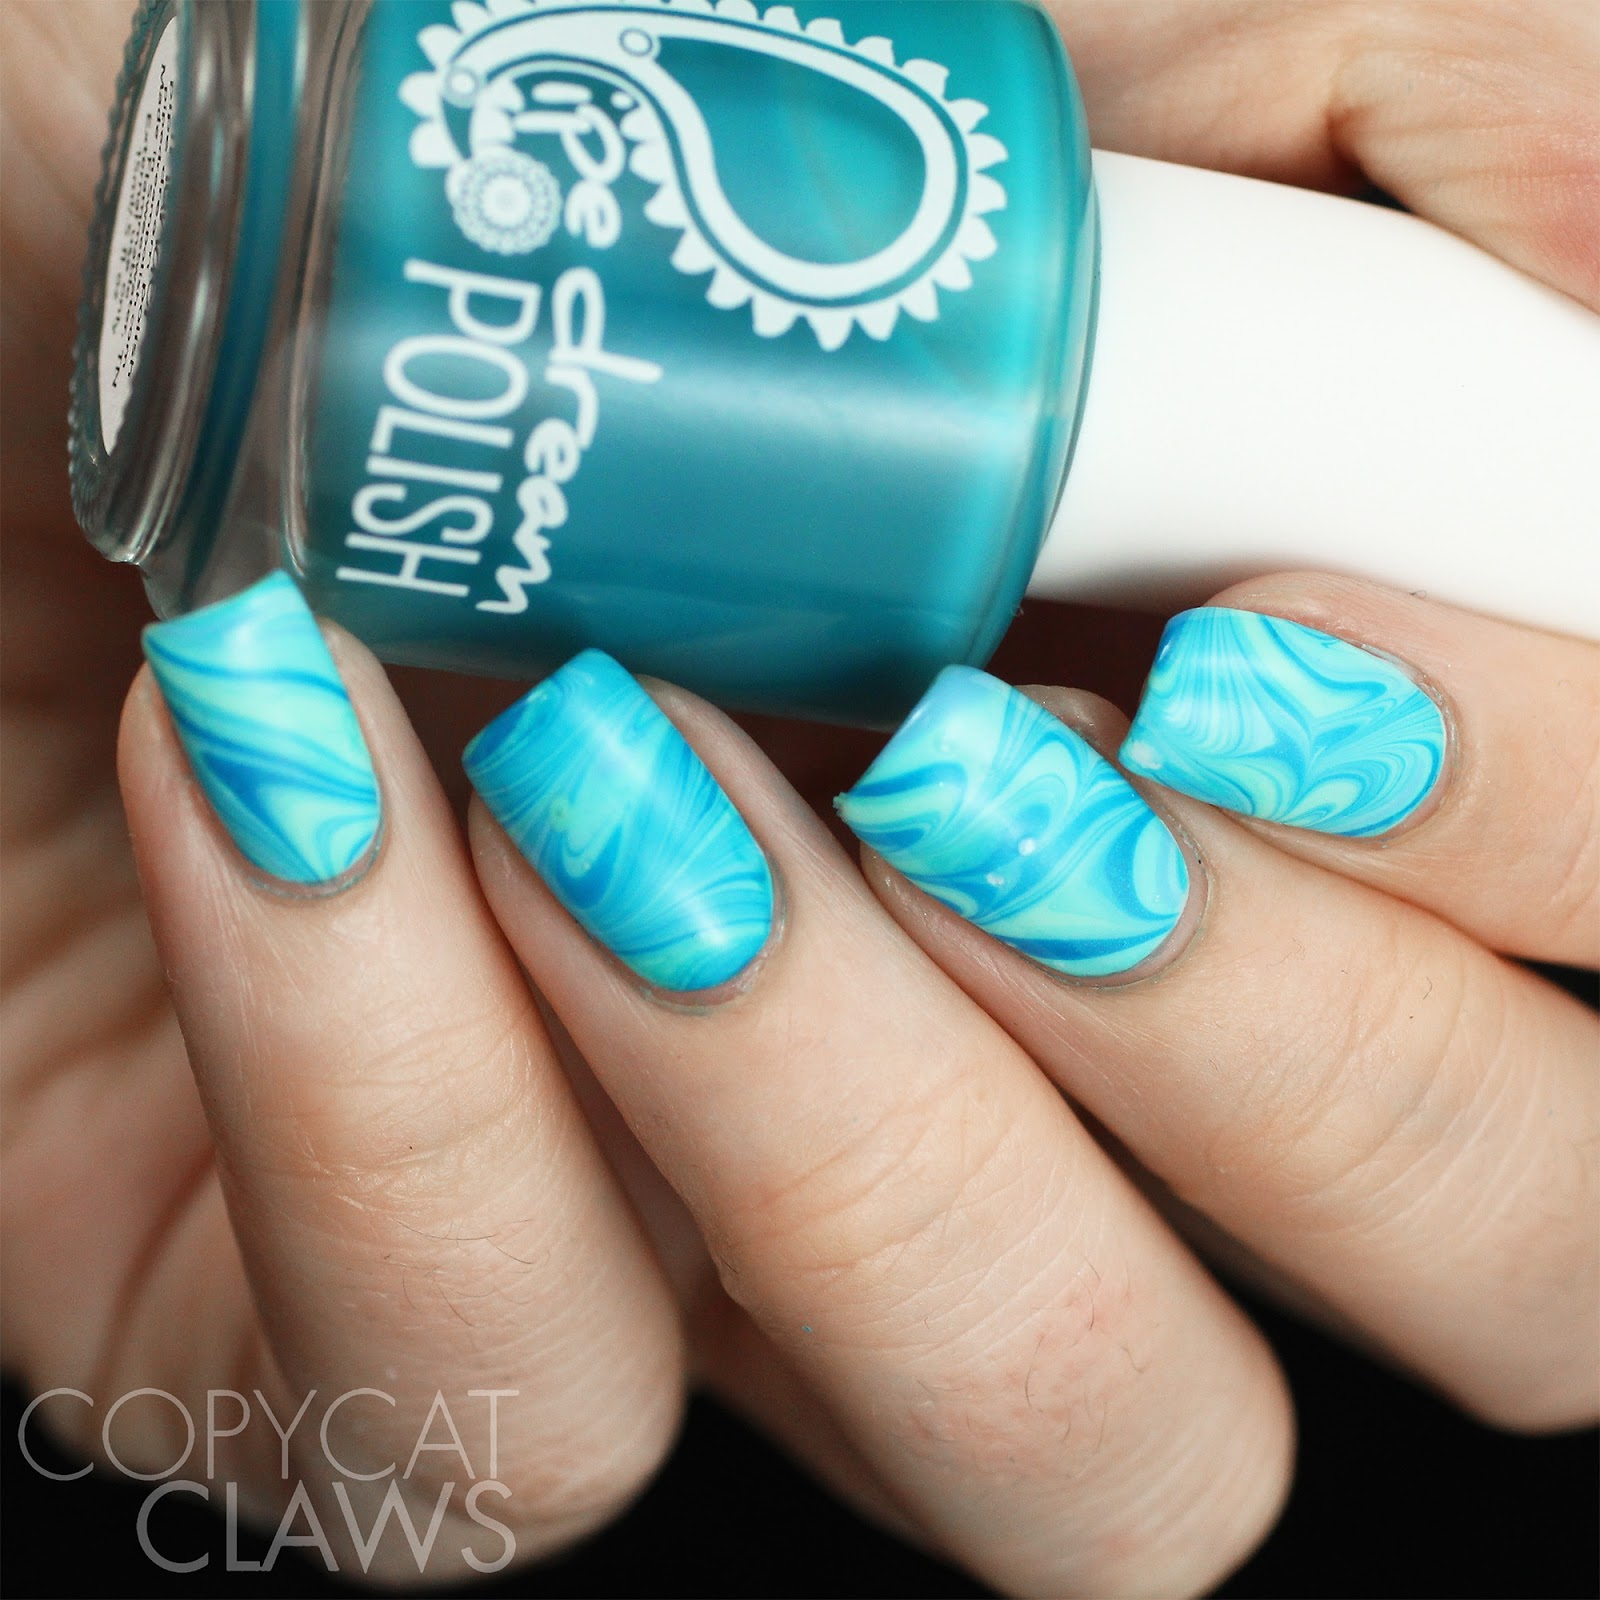 Copycat claws 26 great nail art ideas water i think because i used all shades of the same color and did a swirly water marble i lost some of the color definition but who cares i loved this bubbles prinsesfo Image collections